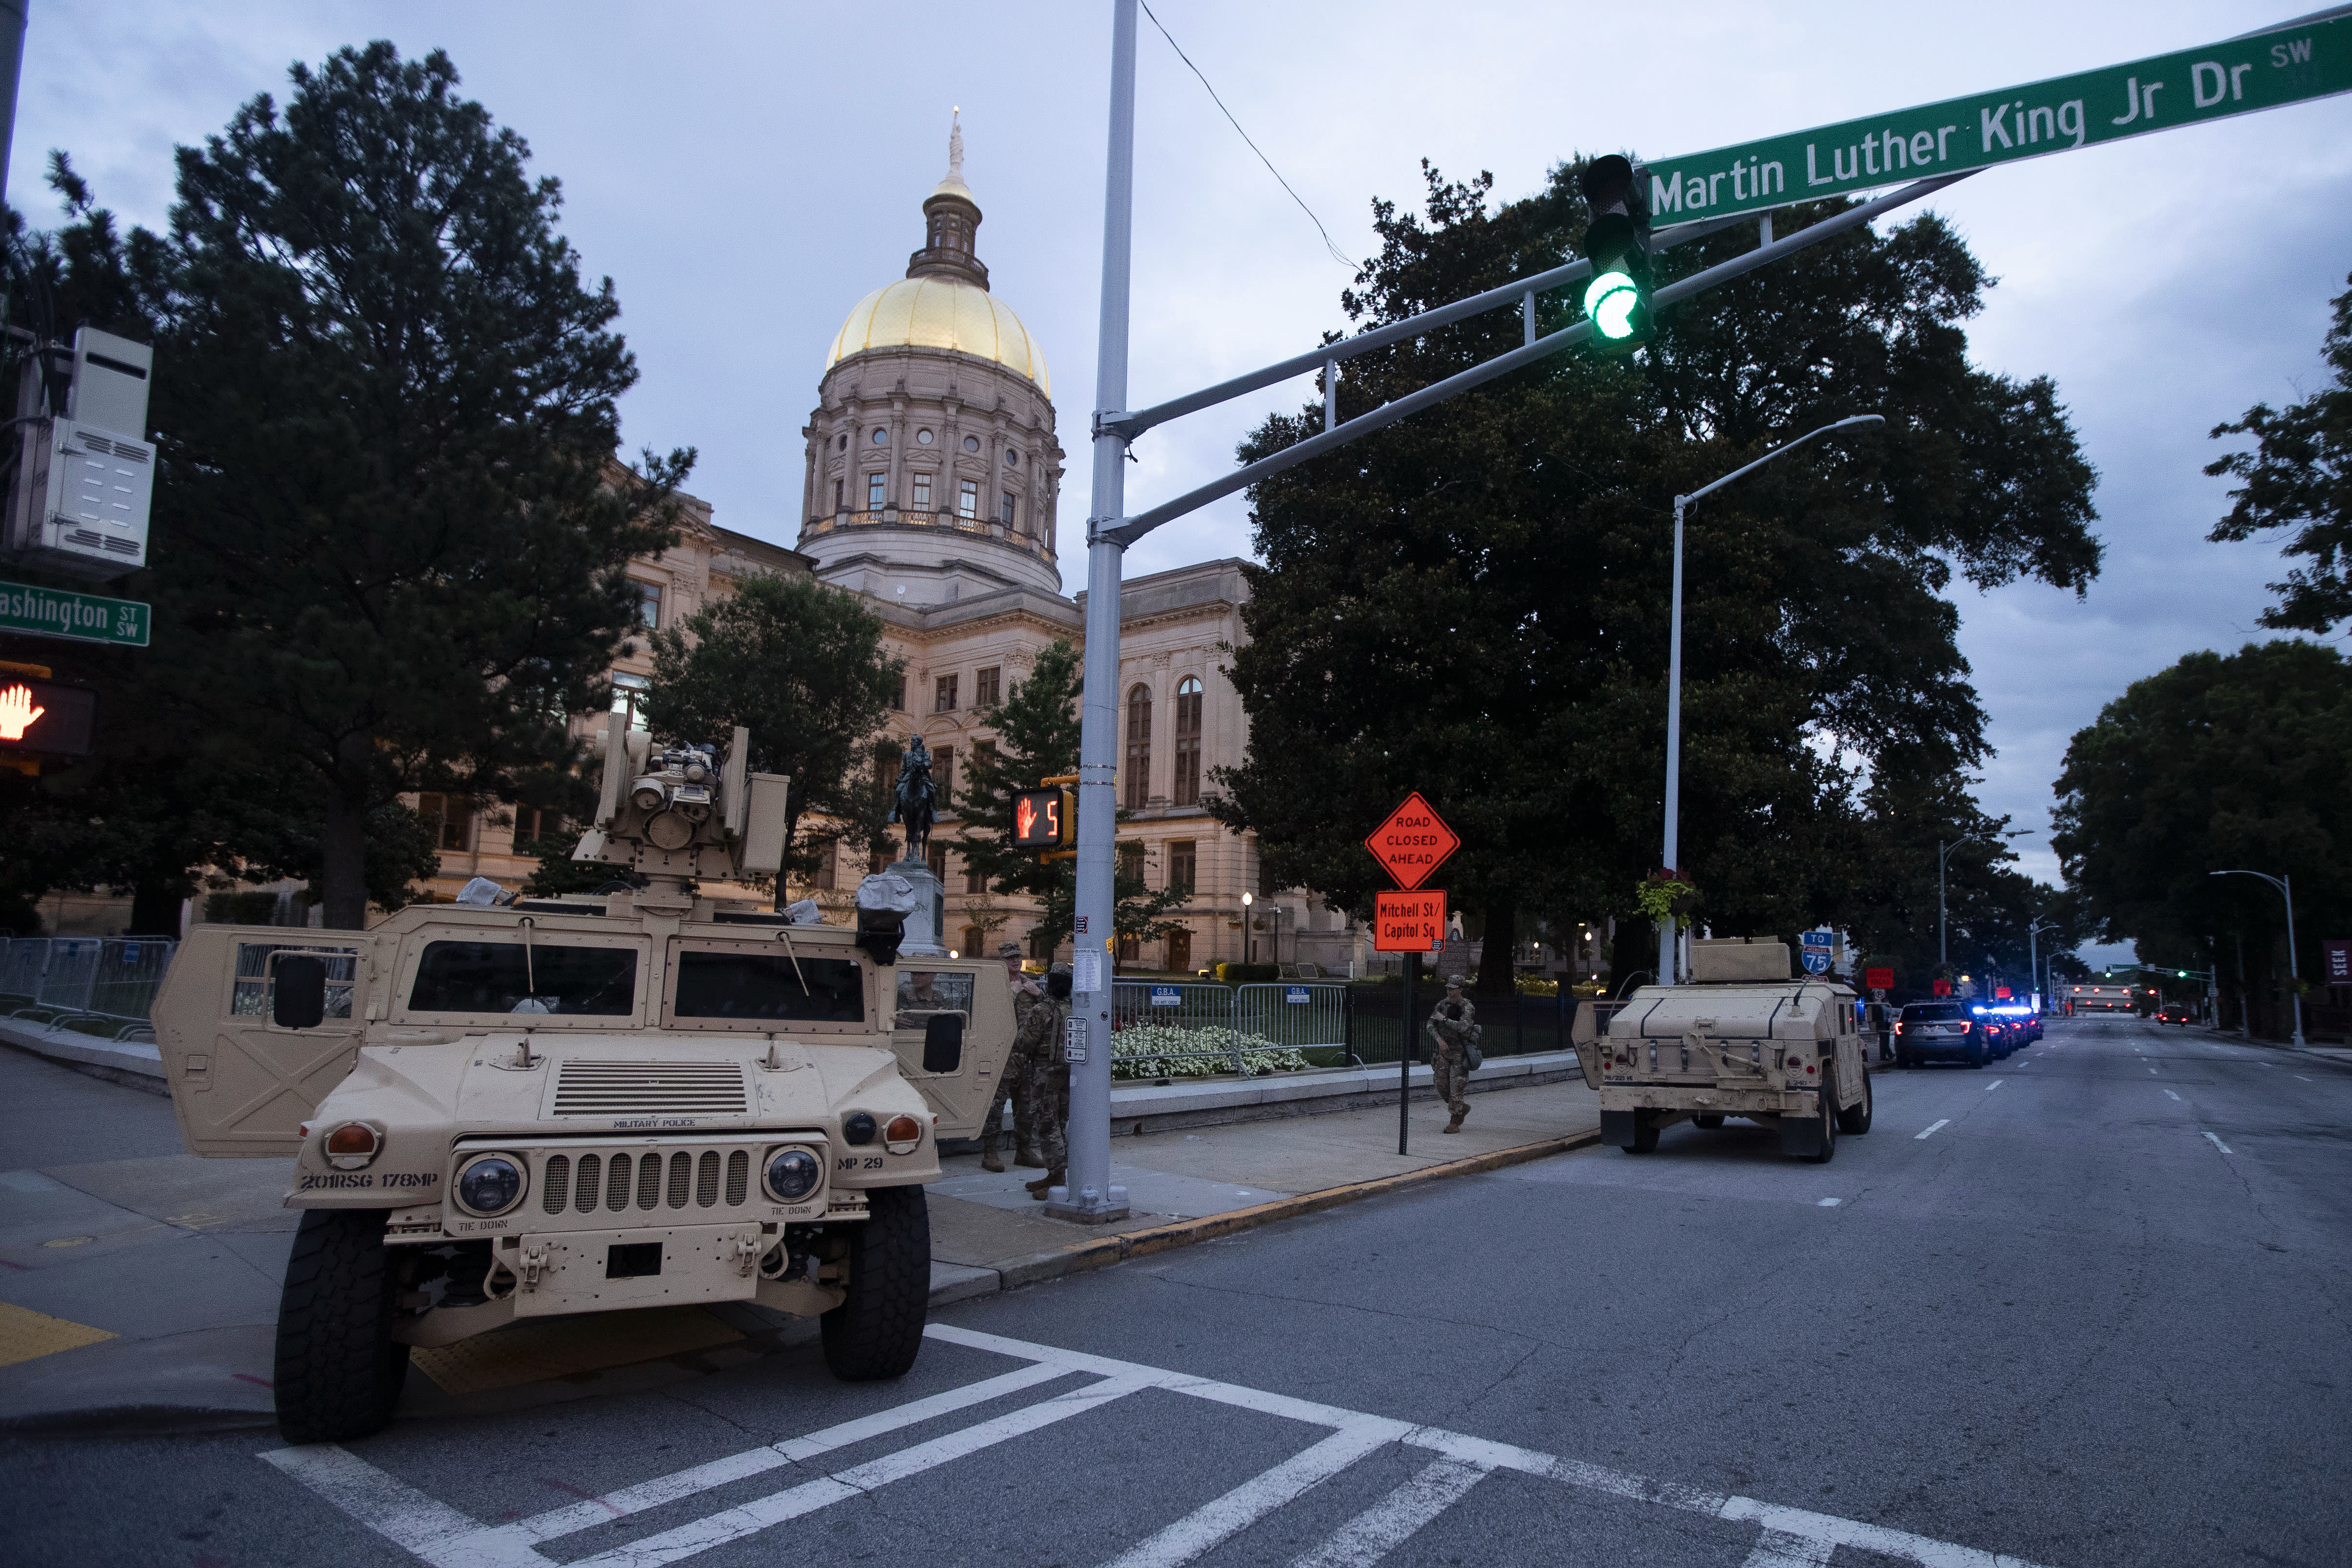 Members of the Georgia National Guard stand outside the State Capitol on Tuesday, July 7, 2020, in Atlanta. Georgia Gov. Brian Kemp mobilized the guard after a surge in gun violence over the weekend. (AP Photo/John Bazemore)